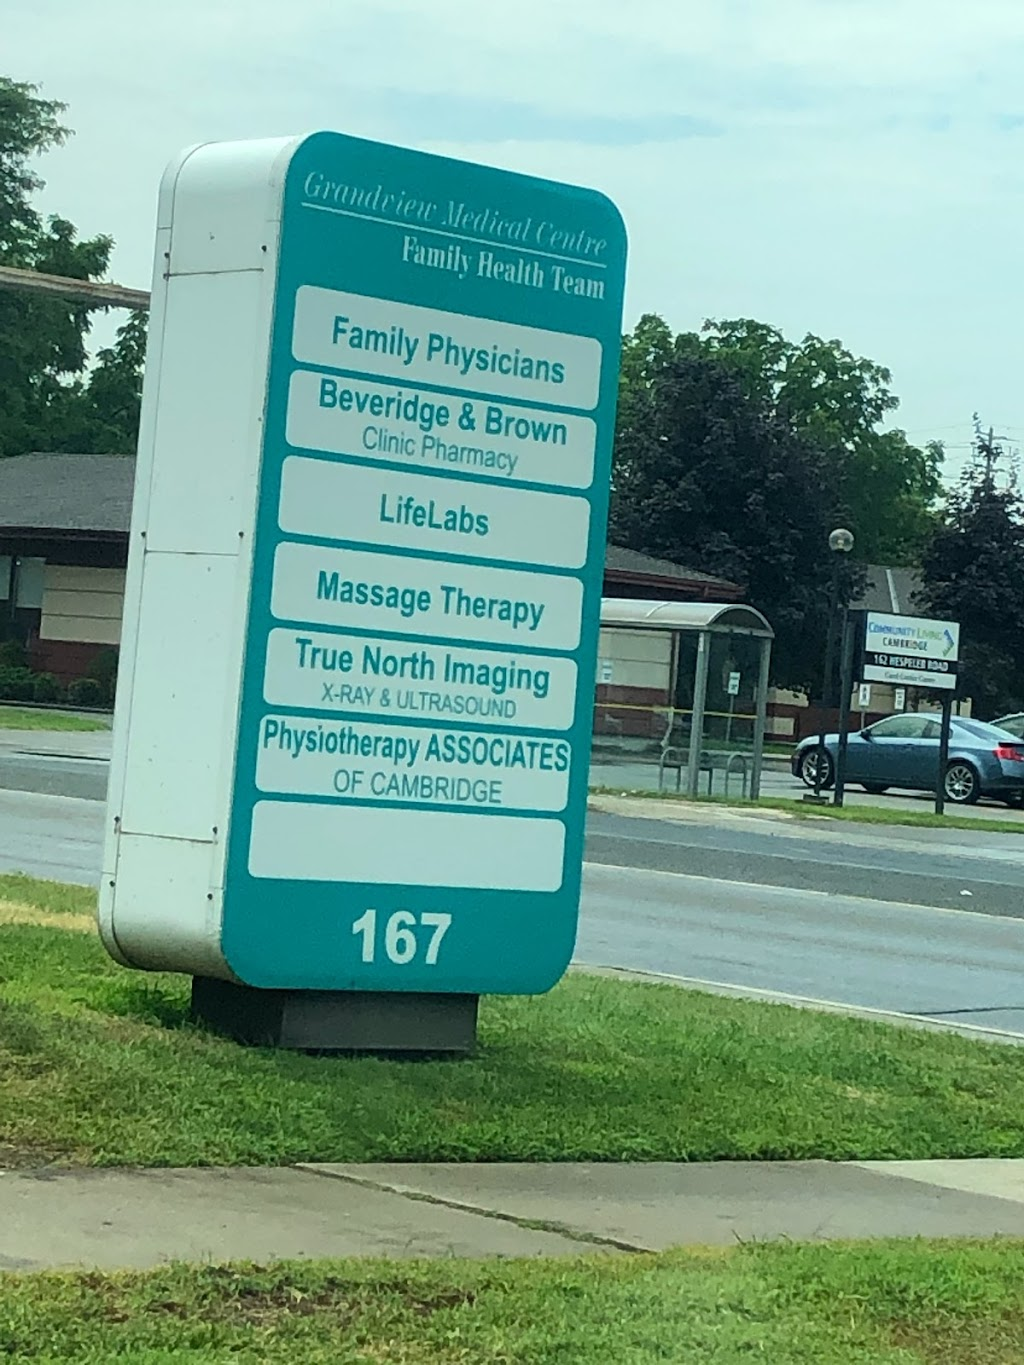 Grandview X-Ray & Ultrasound   health   167 Hespeler Rd, Cambridge, ON N1R 3H7, Canada   5196236060 OR +1 519-623-6060